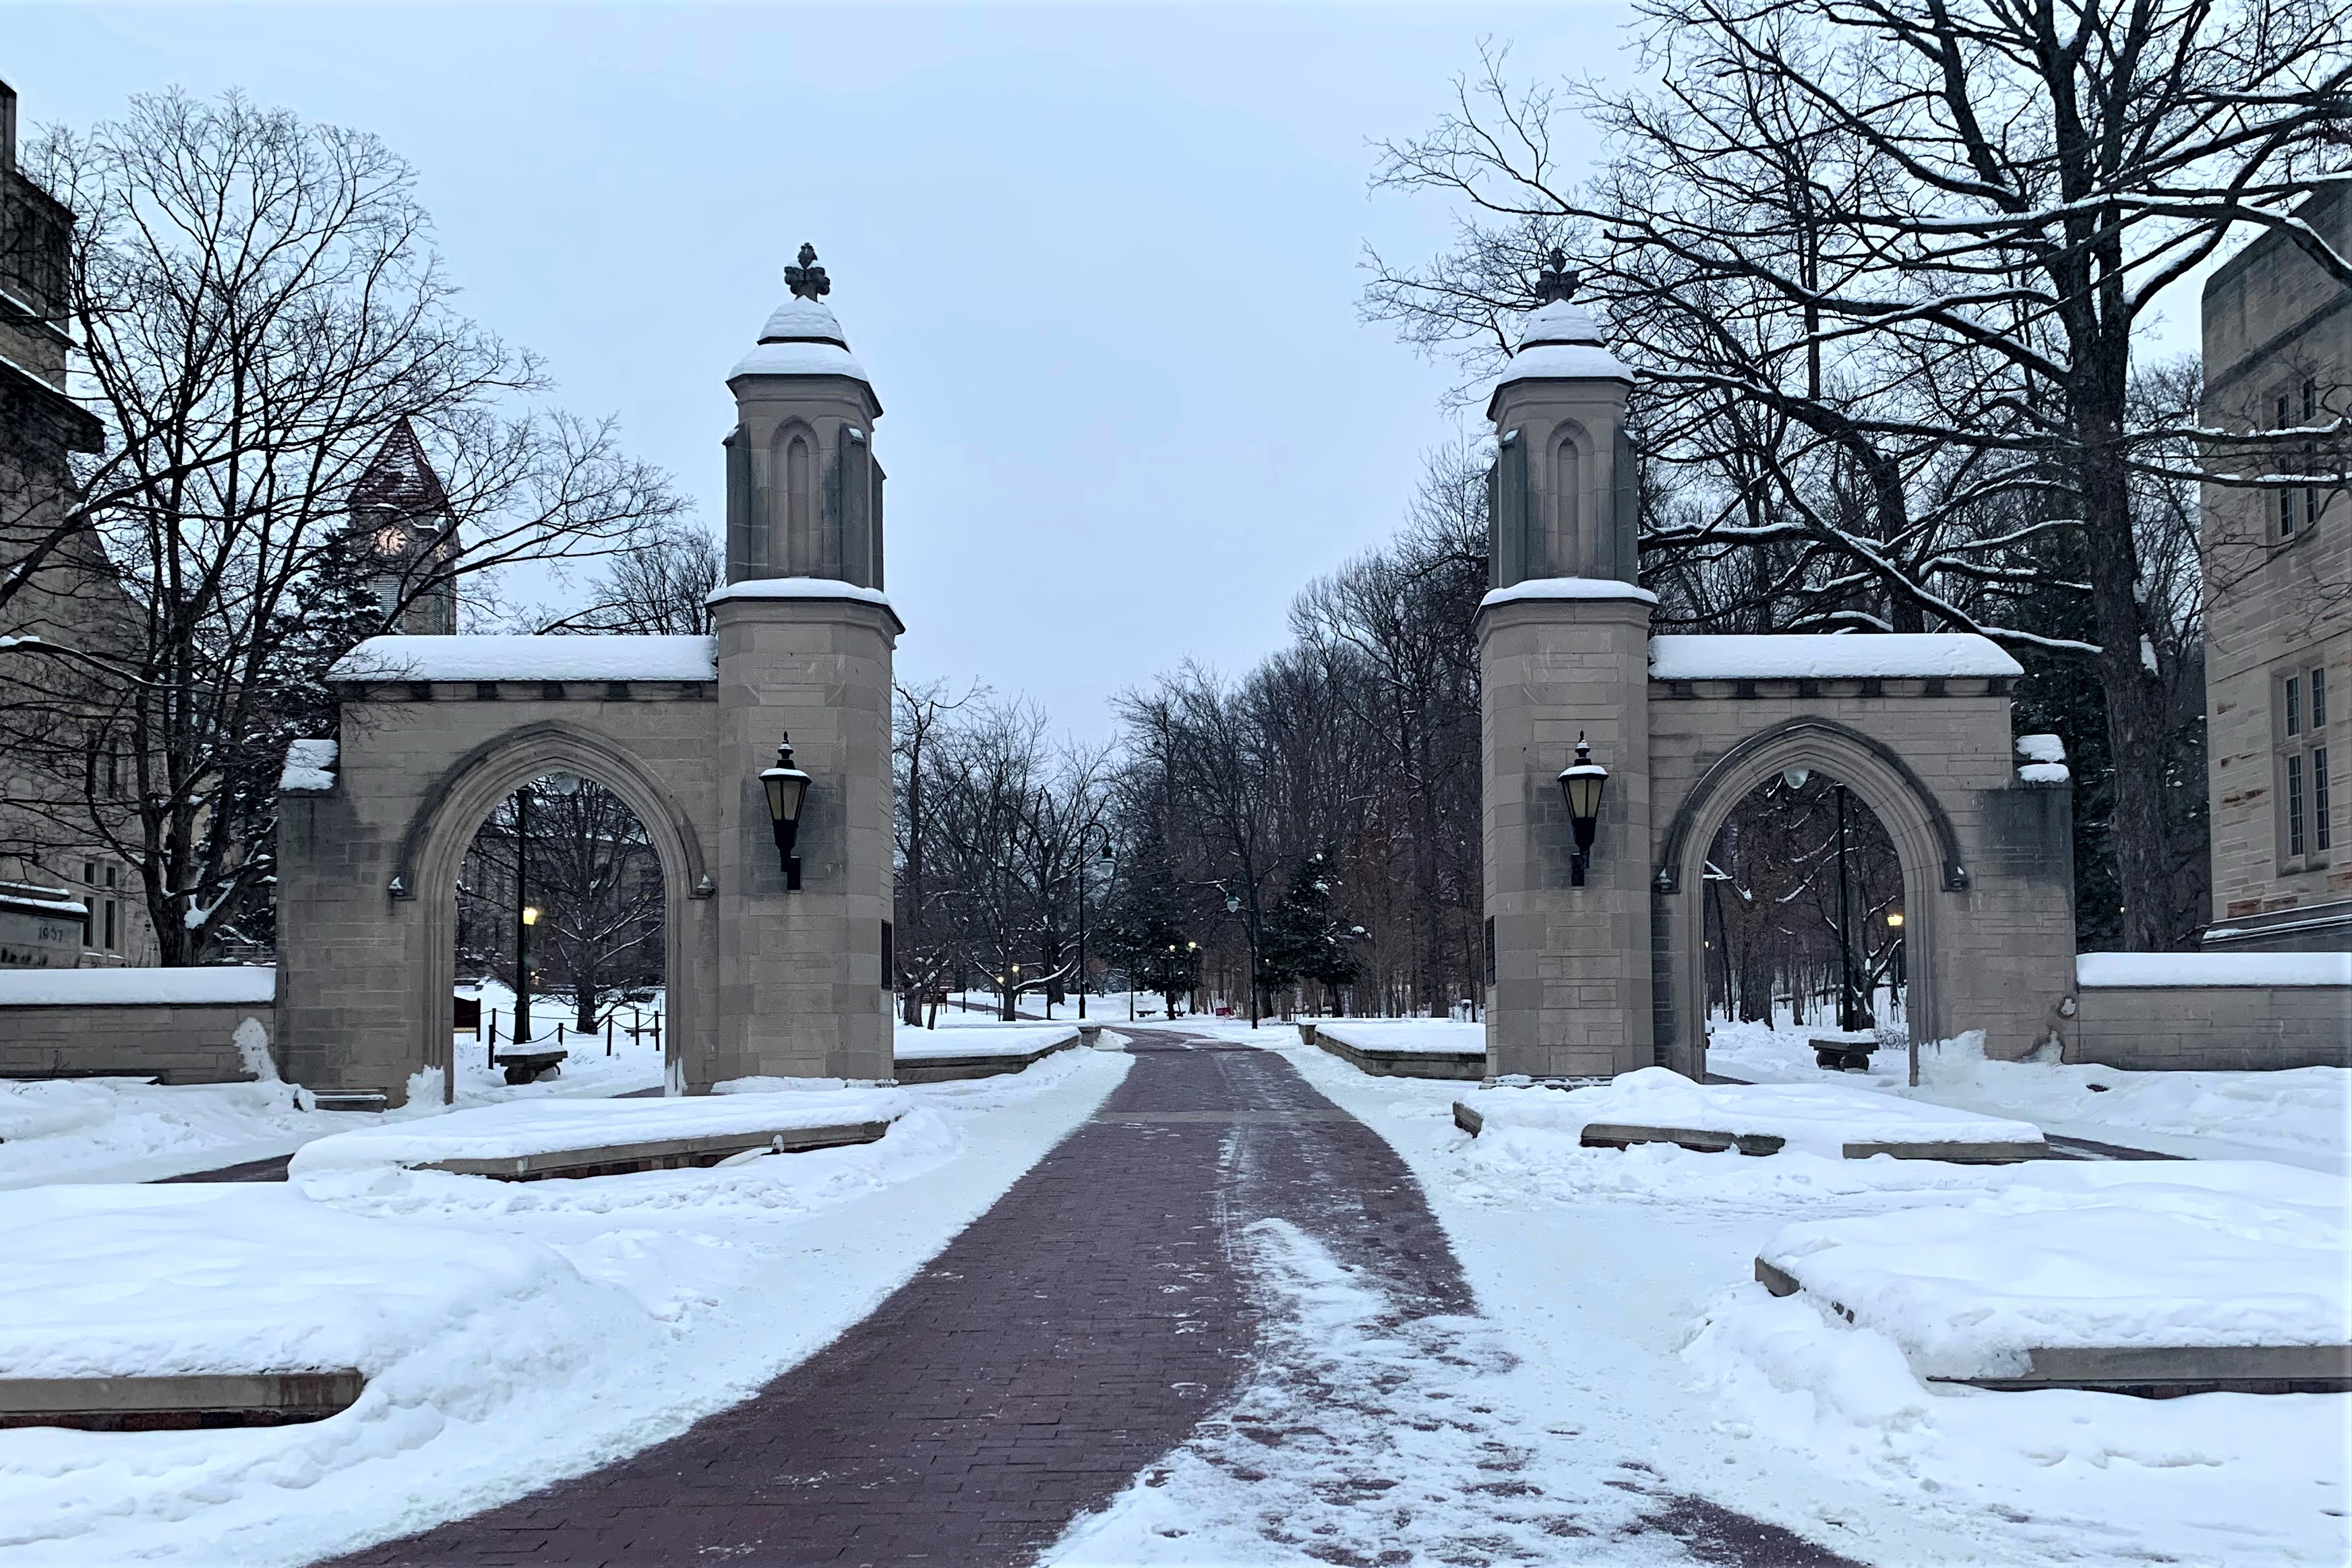 Sample Gates at Indiana University Bloomington campus in the winter/snow, Feb 2021.